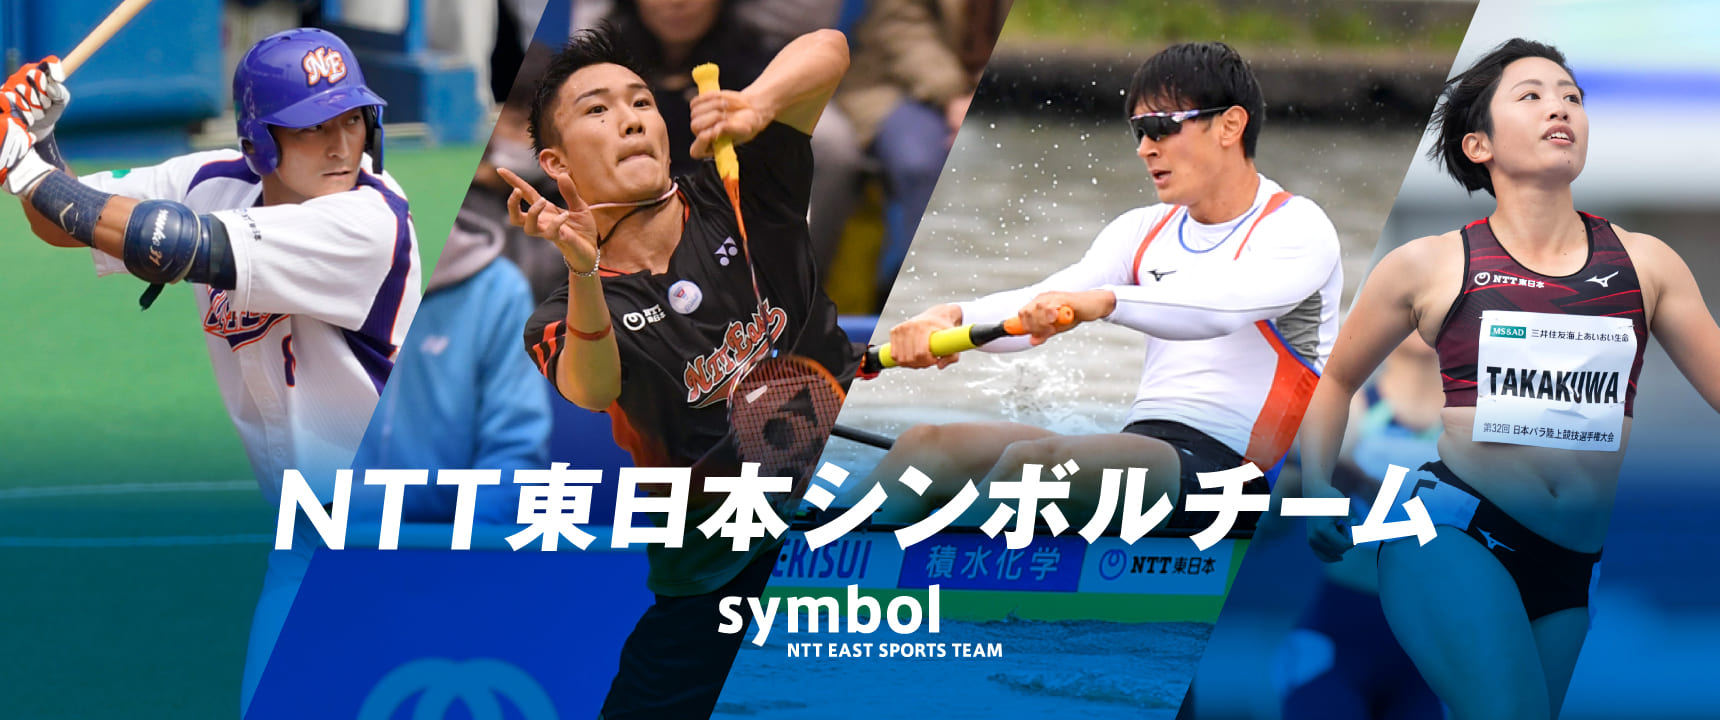 symbol NTT EAST SPRTS TEAM